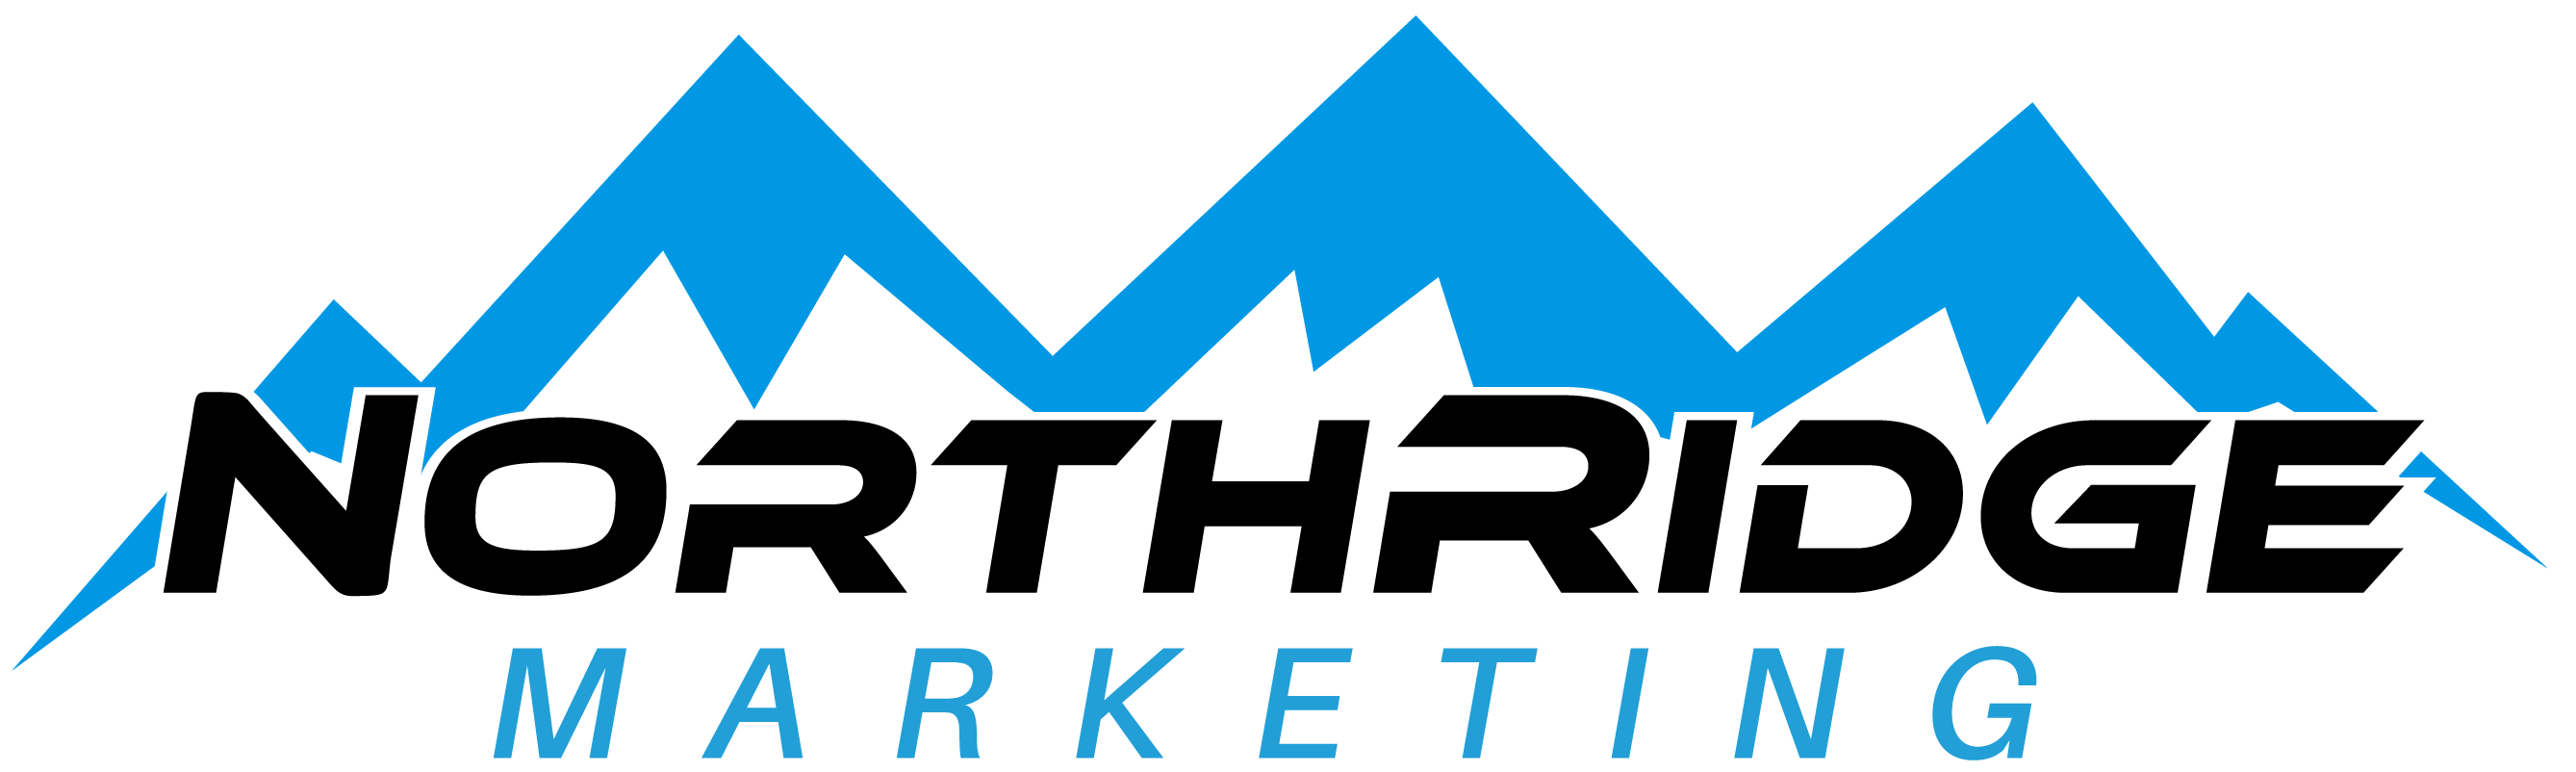 Northridge Marketing